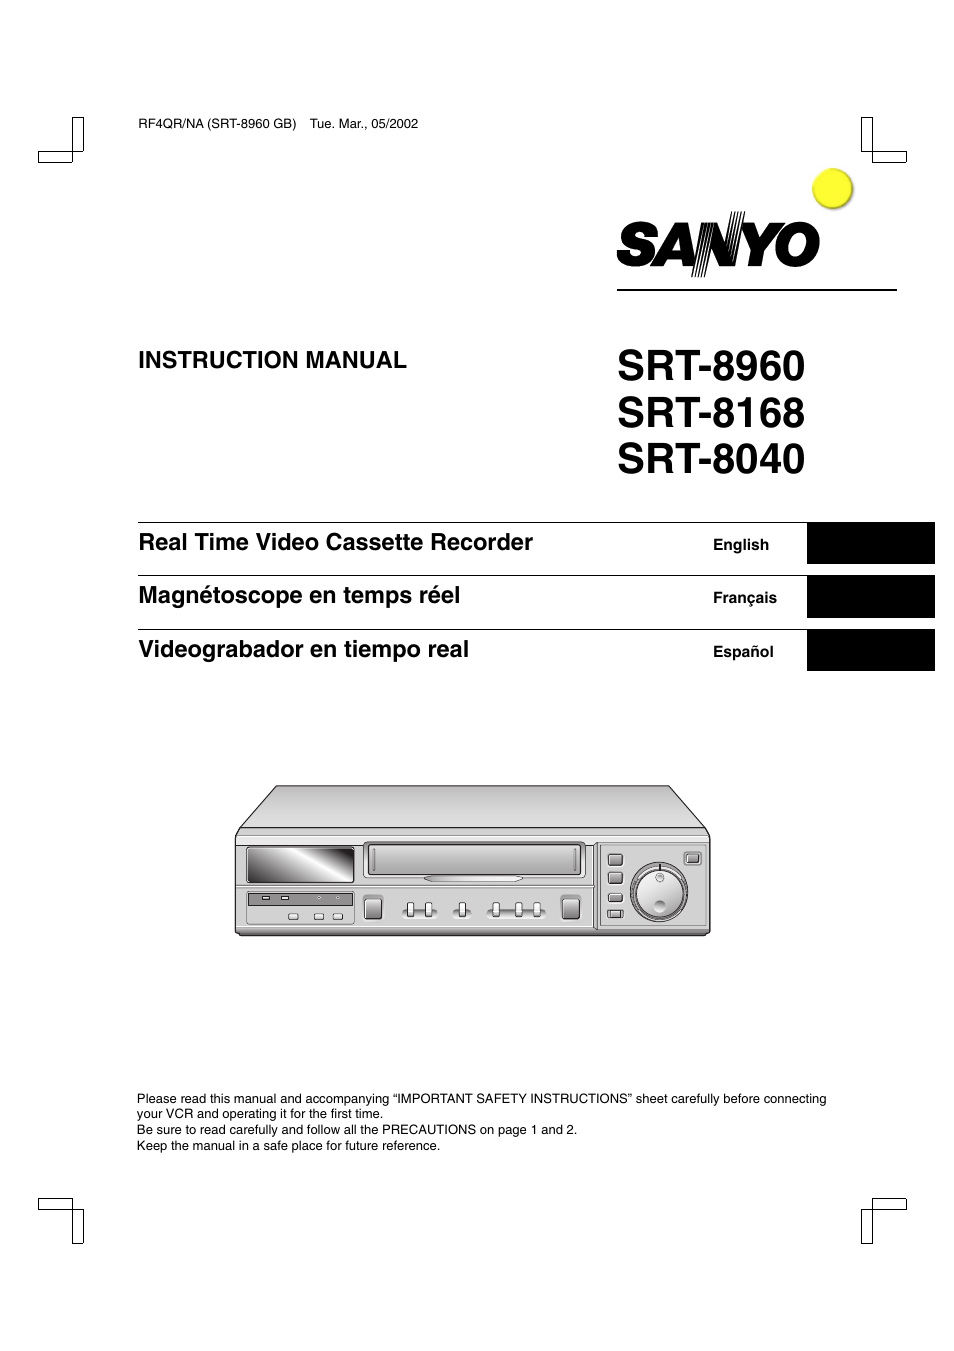 owners manual sanyo srt 8040 user manual 56 pages also for srt 8960 srt  8168 sanyo